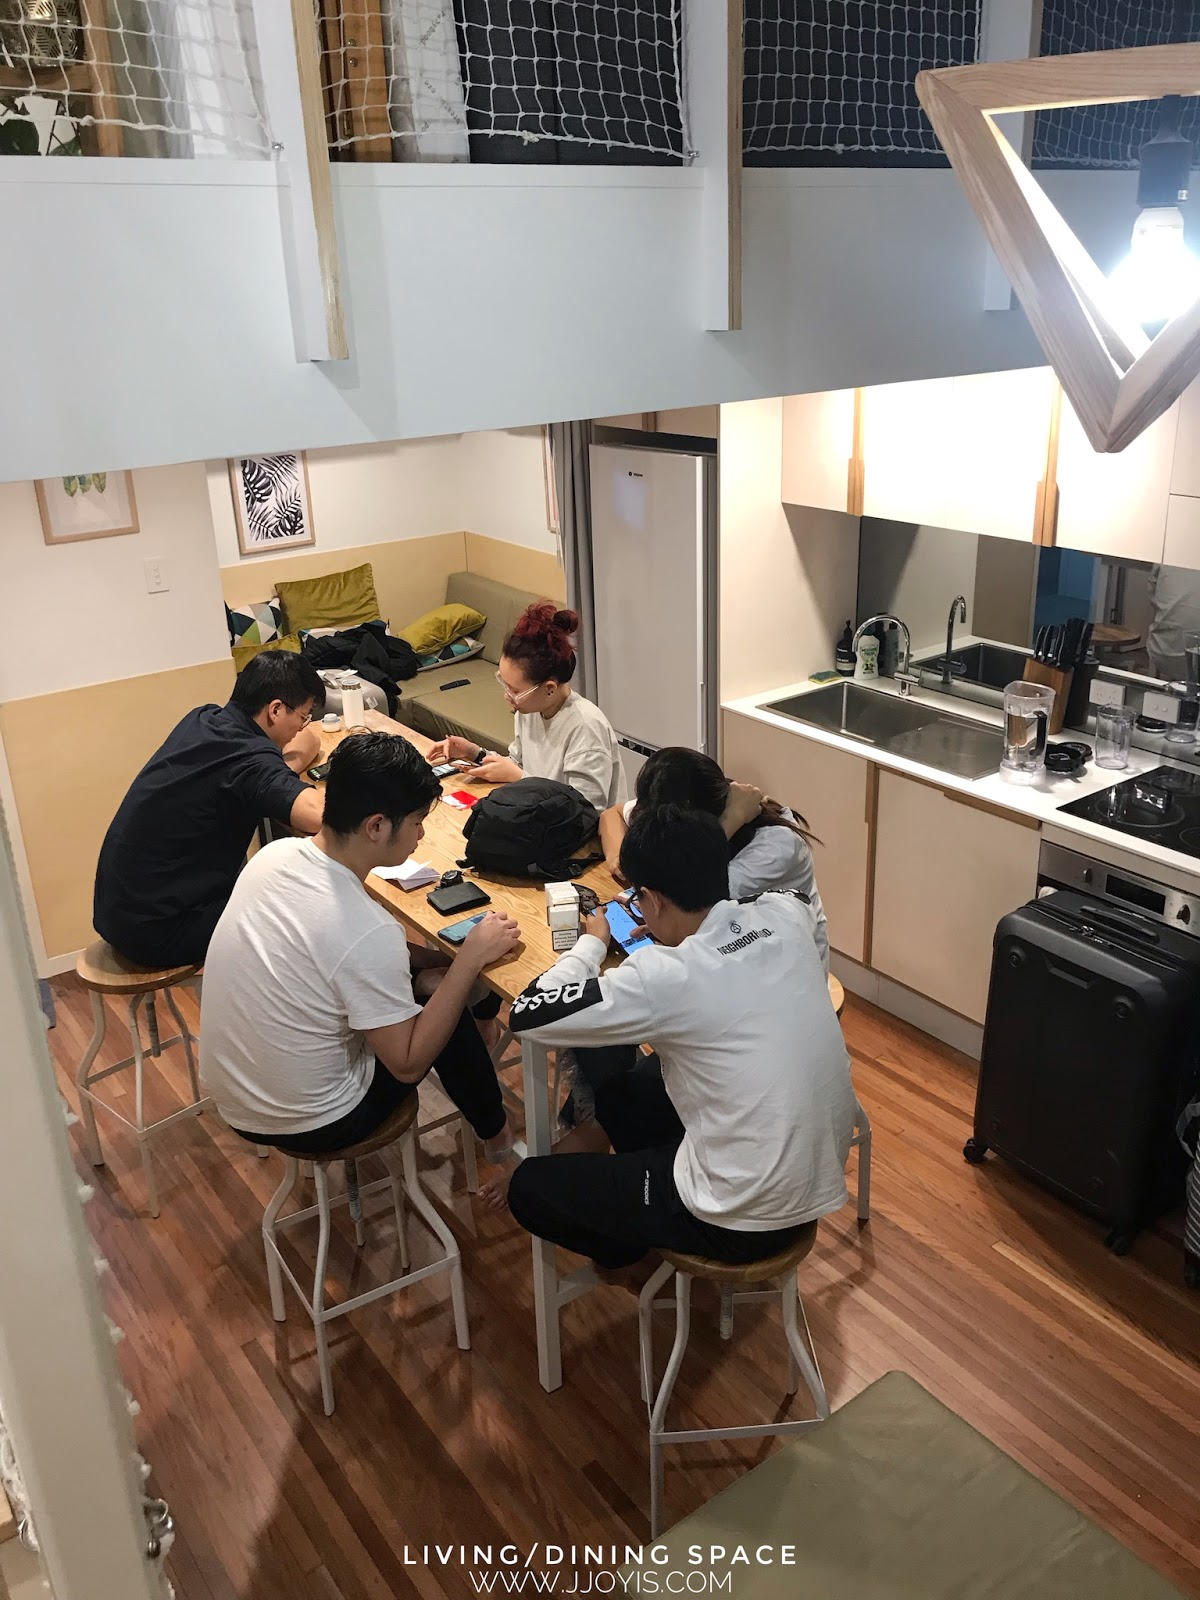 Airbnb for large groups (sleep 7) in Brisbane CBD dining